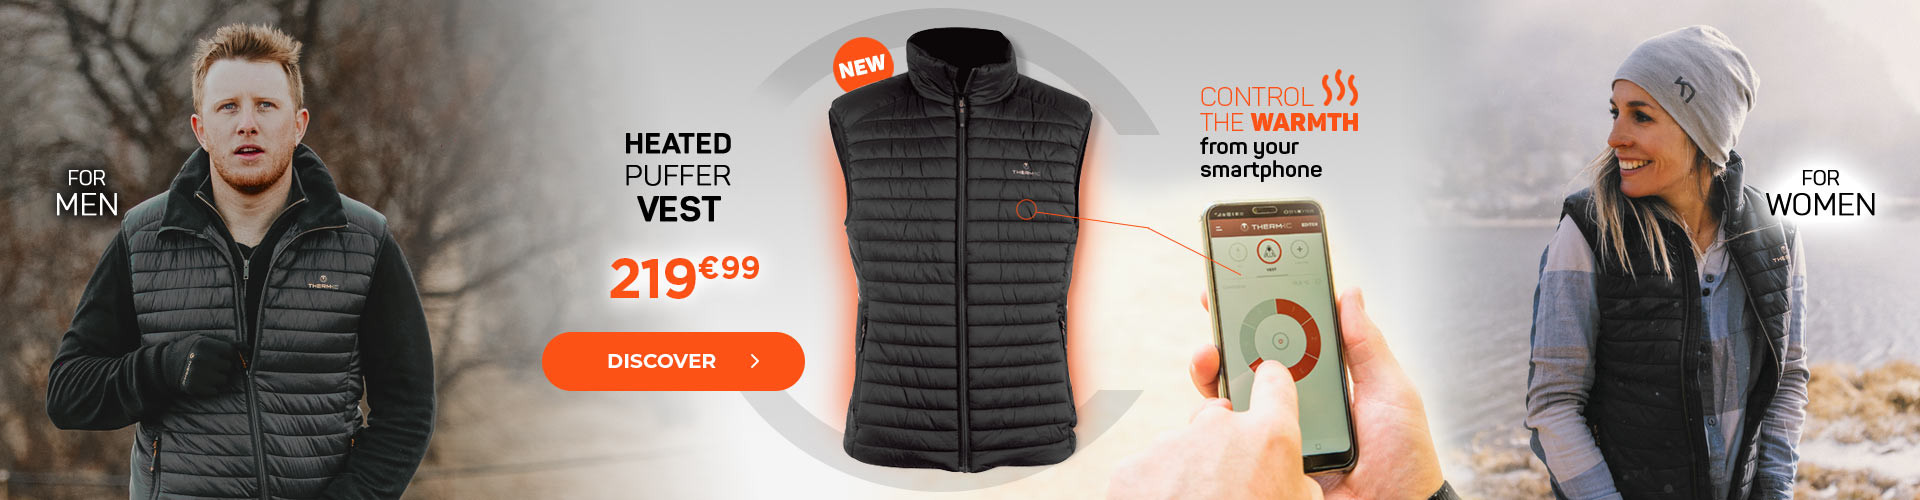 Discover our heated puffer jacket! Nice comfort and heat all day long!